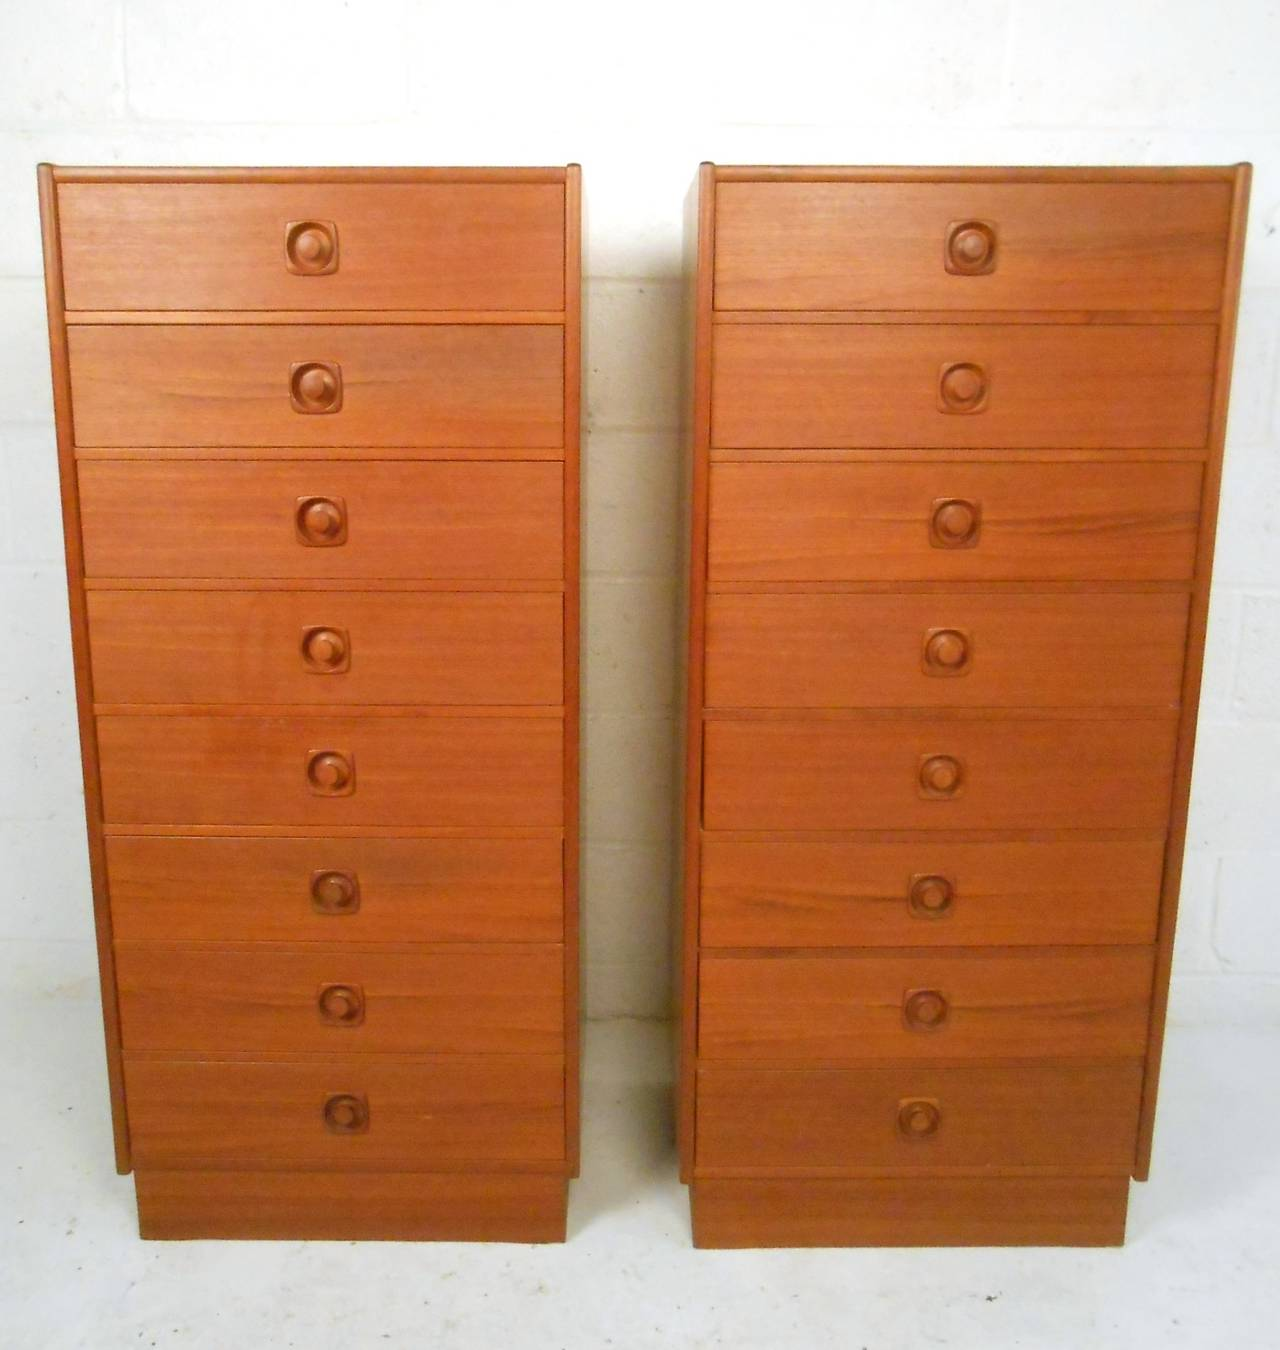 midcentury modern teak lingerie chest for sale at stdibs - midcentury modern teak lingerie chest